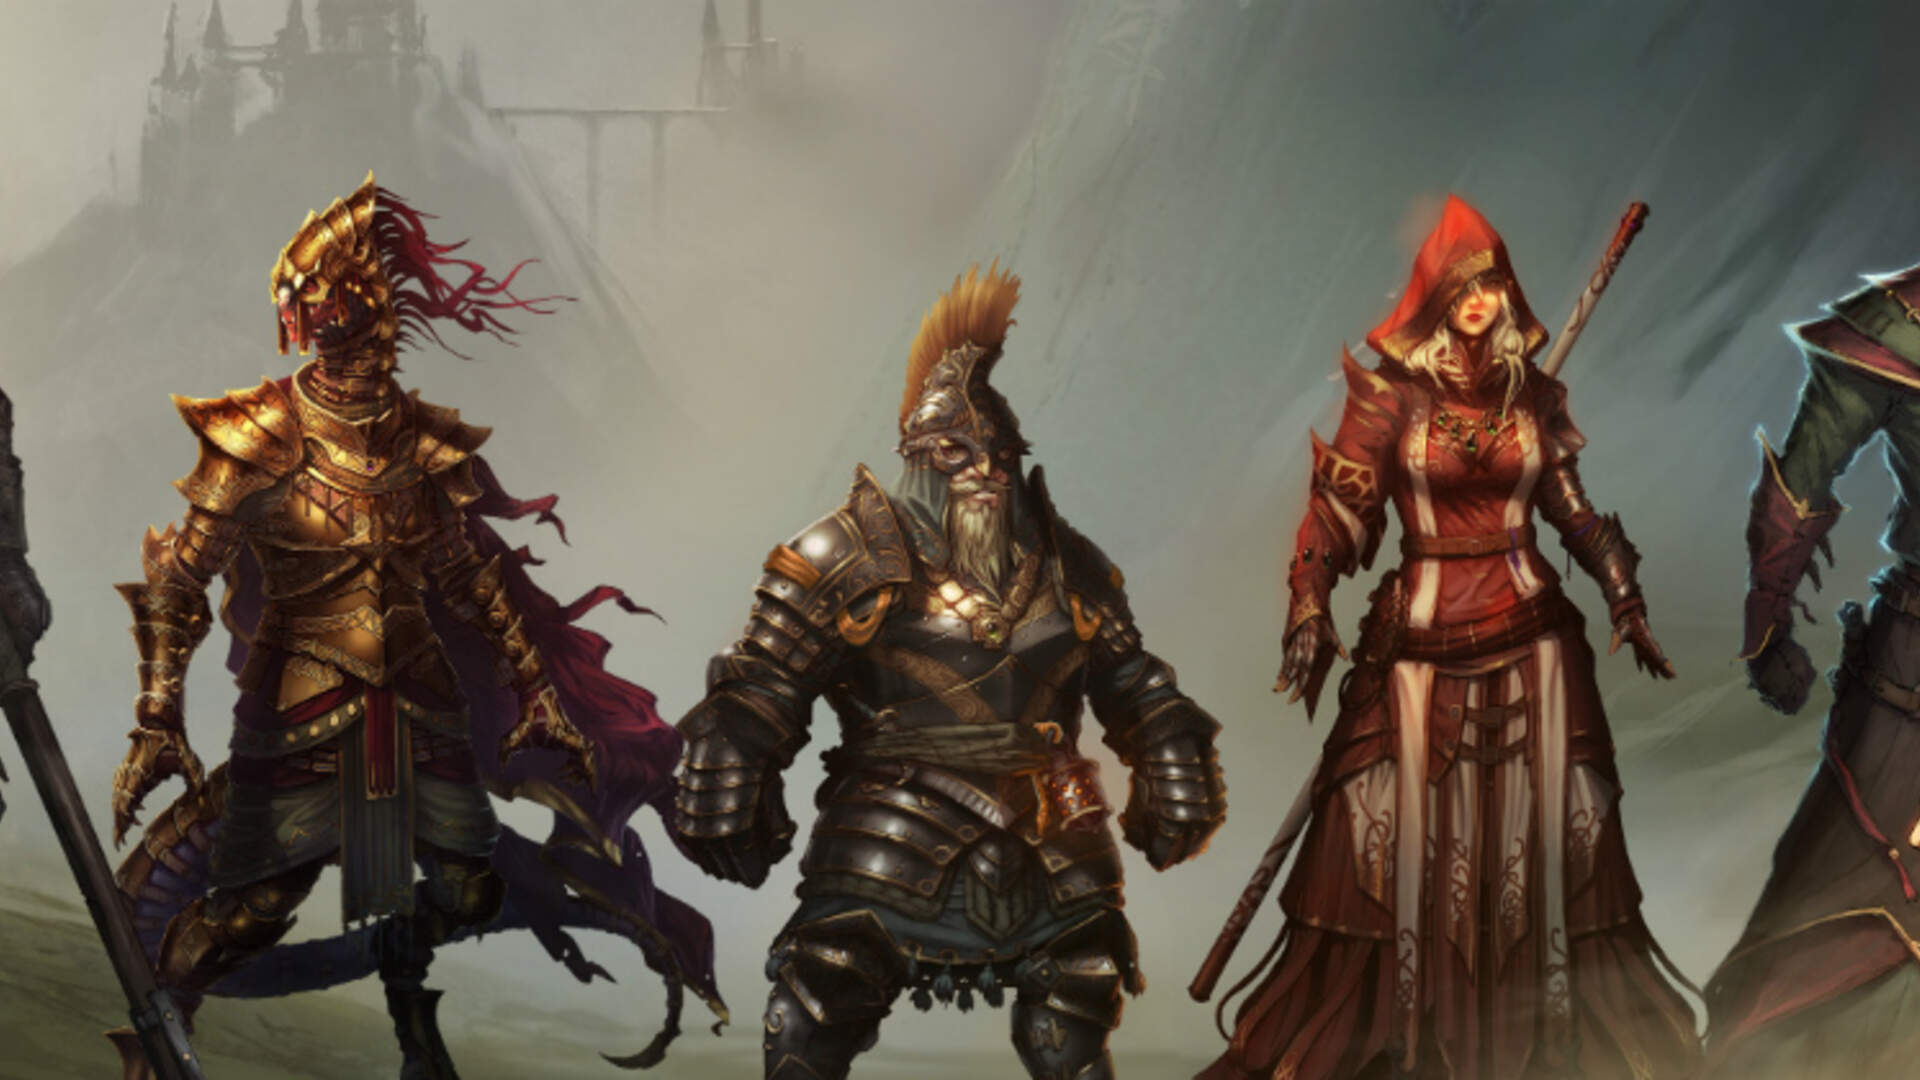 Divinity: Original Sin 2 Launches in September